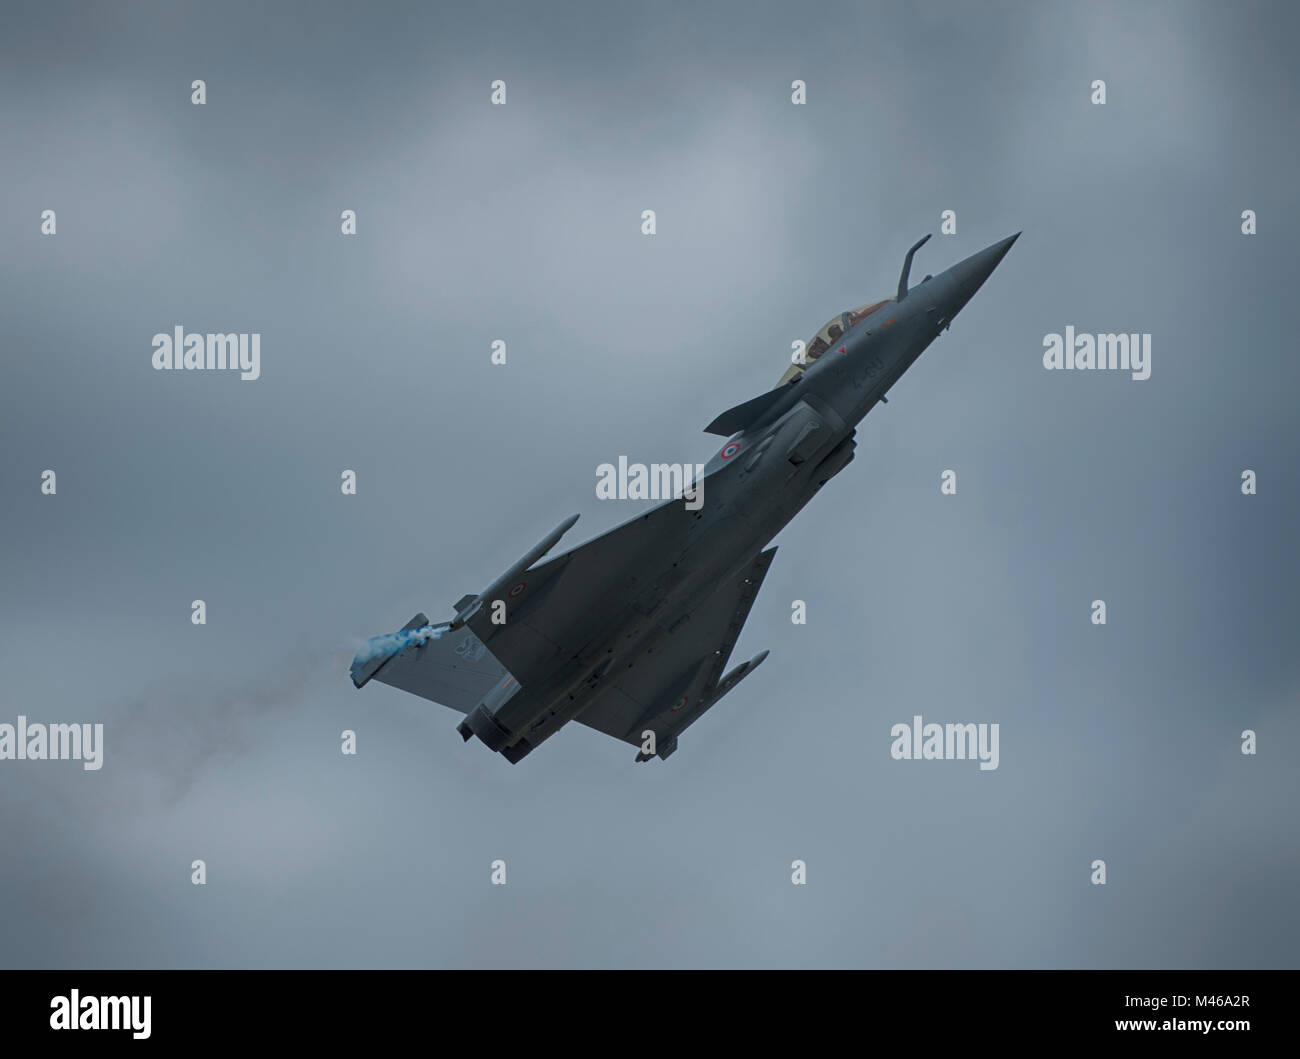 Dassault Rafale fighter aircraft flying display at RIAT, RAF Fairford, UK - Stock Image